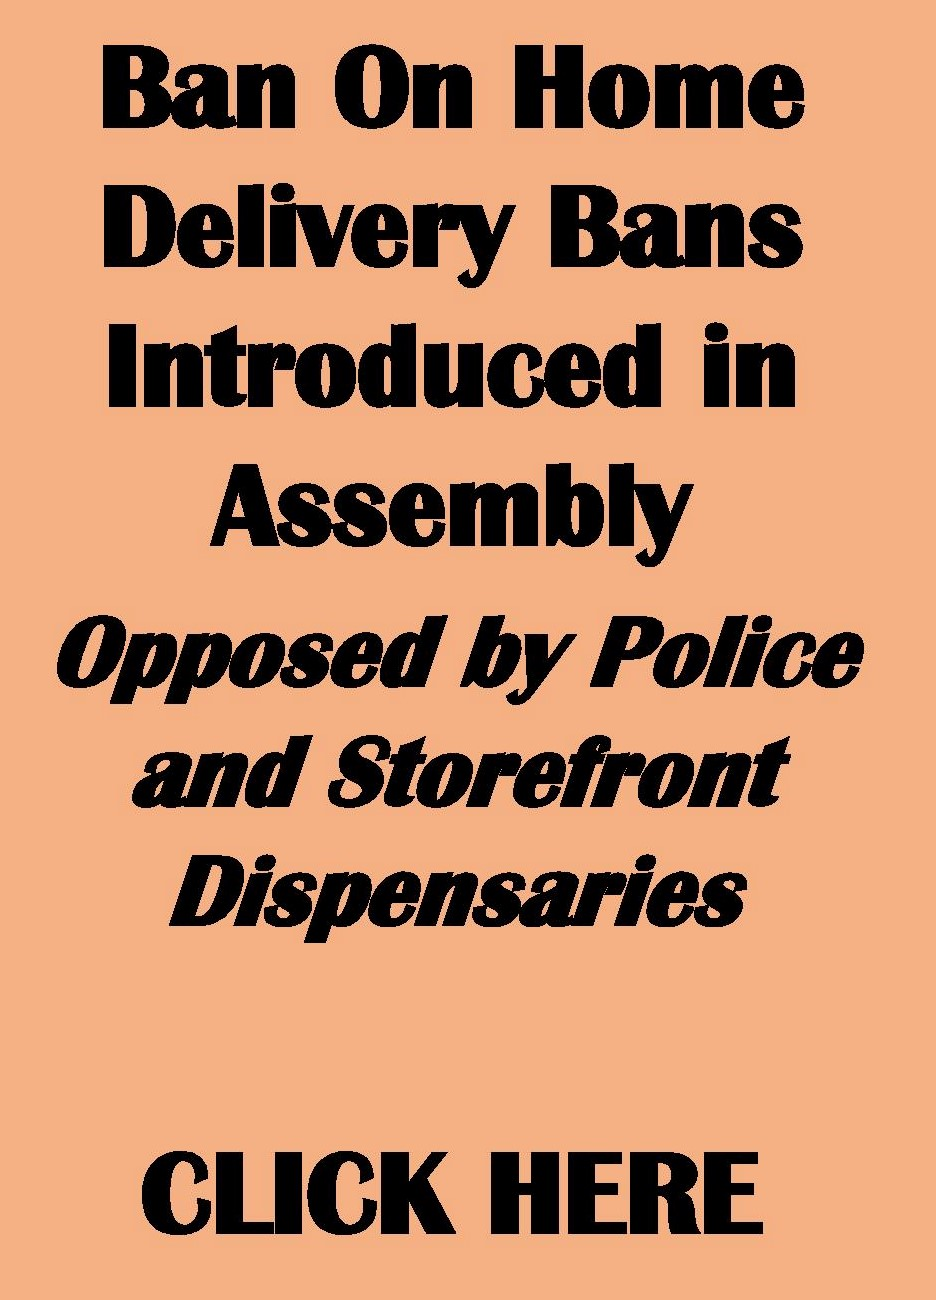 ban_on_home_delivery_bans_2.jpg